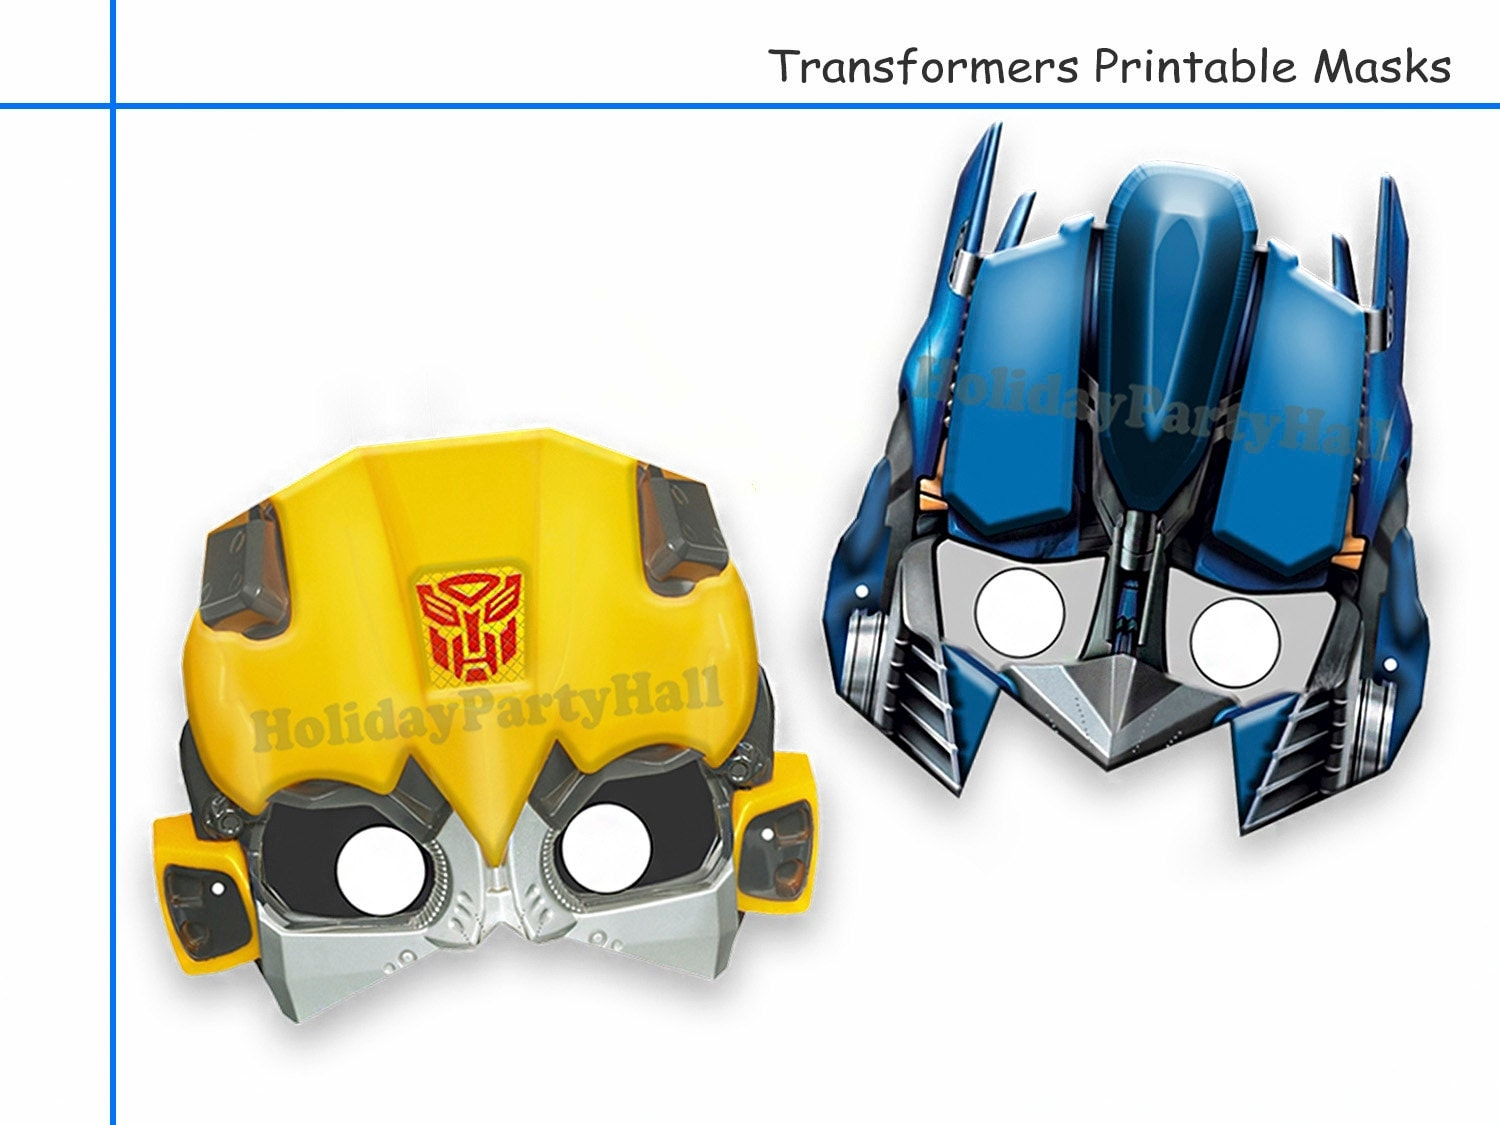 Free printable coloring pages rescue bots - Unique 2 Transformers Printable Masks Party Decoration Kids Dress Up Mask Photo Booth Props Rescue Bots Boys Costume Robot Diy Paper